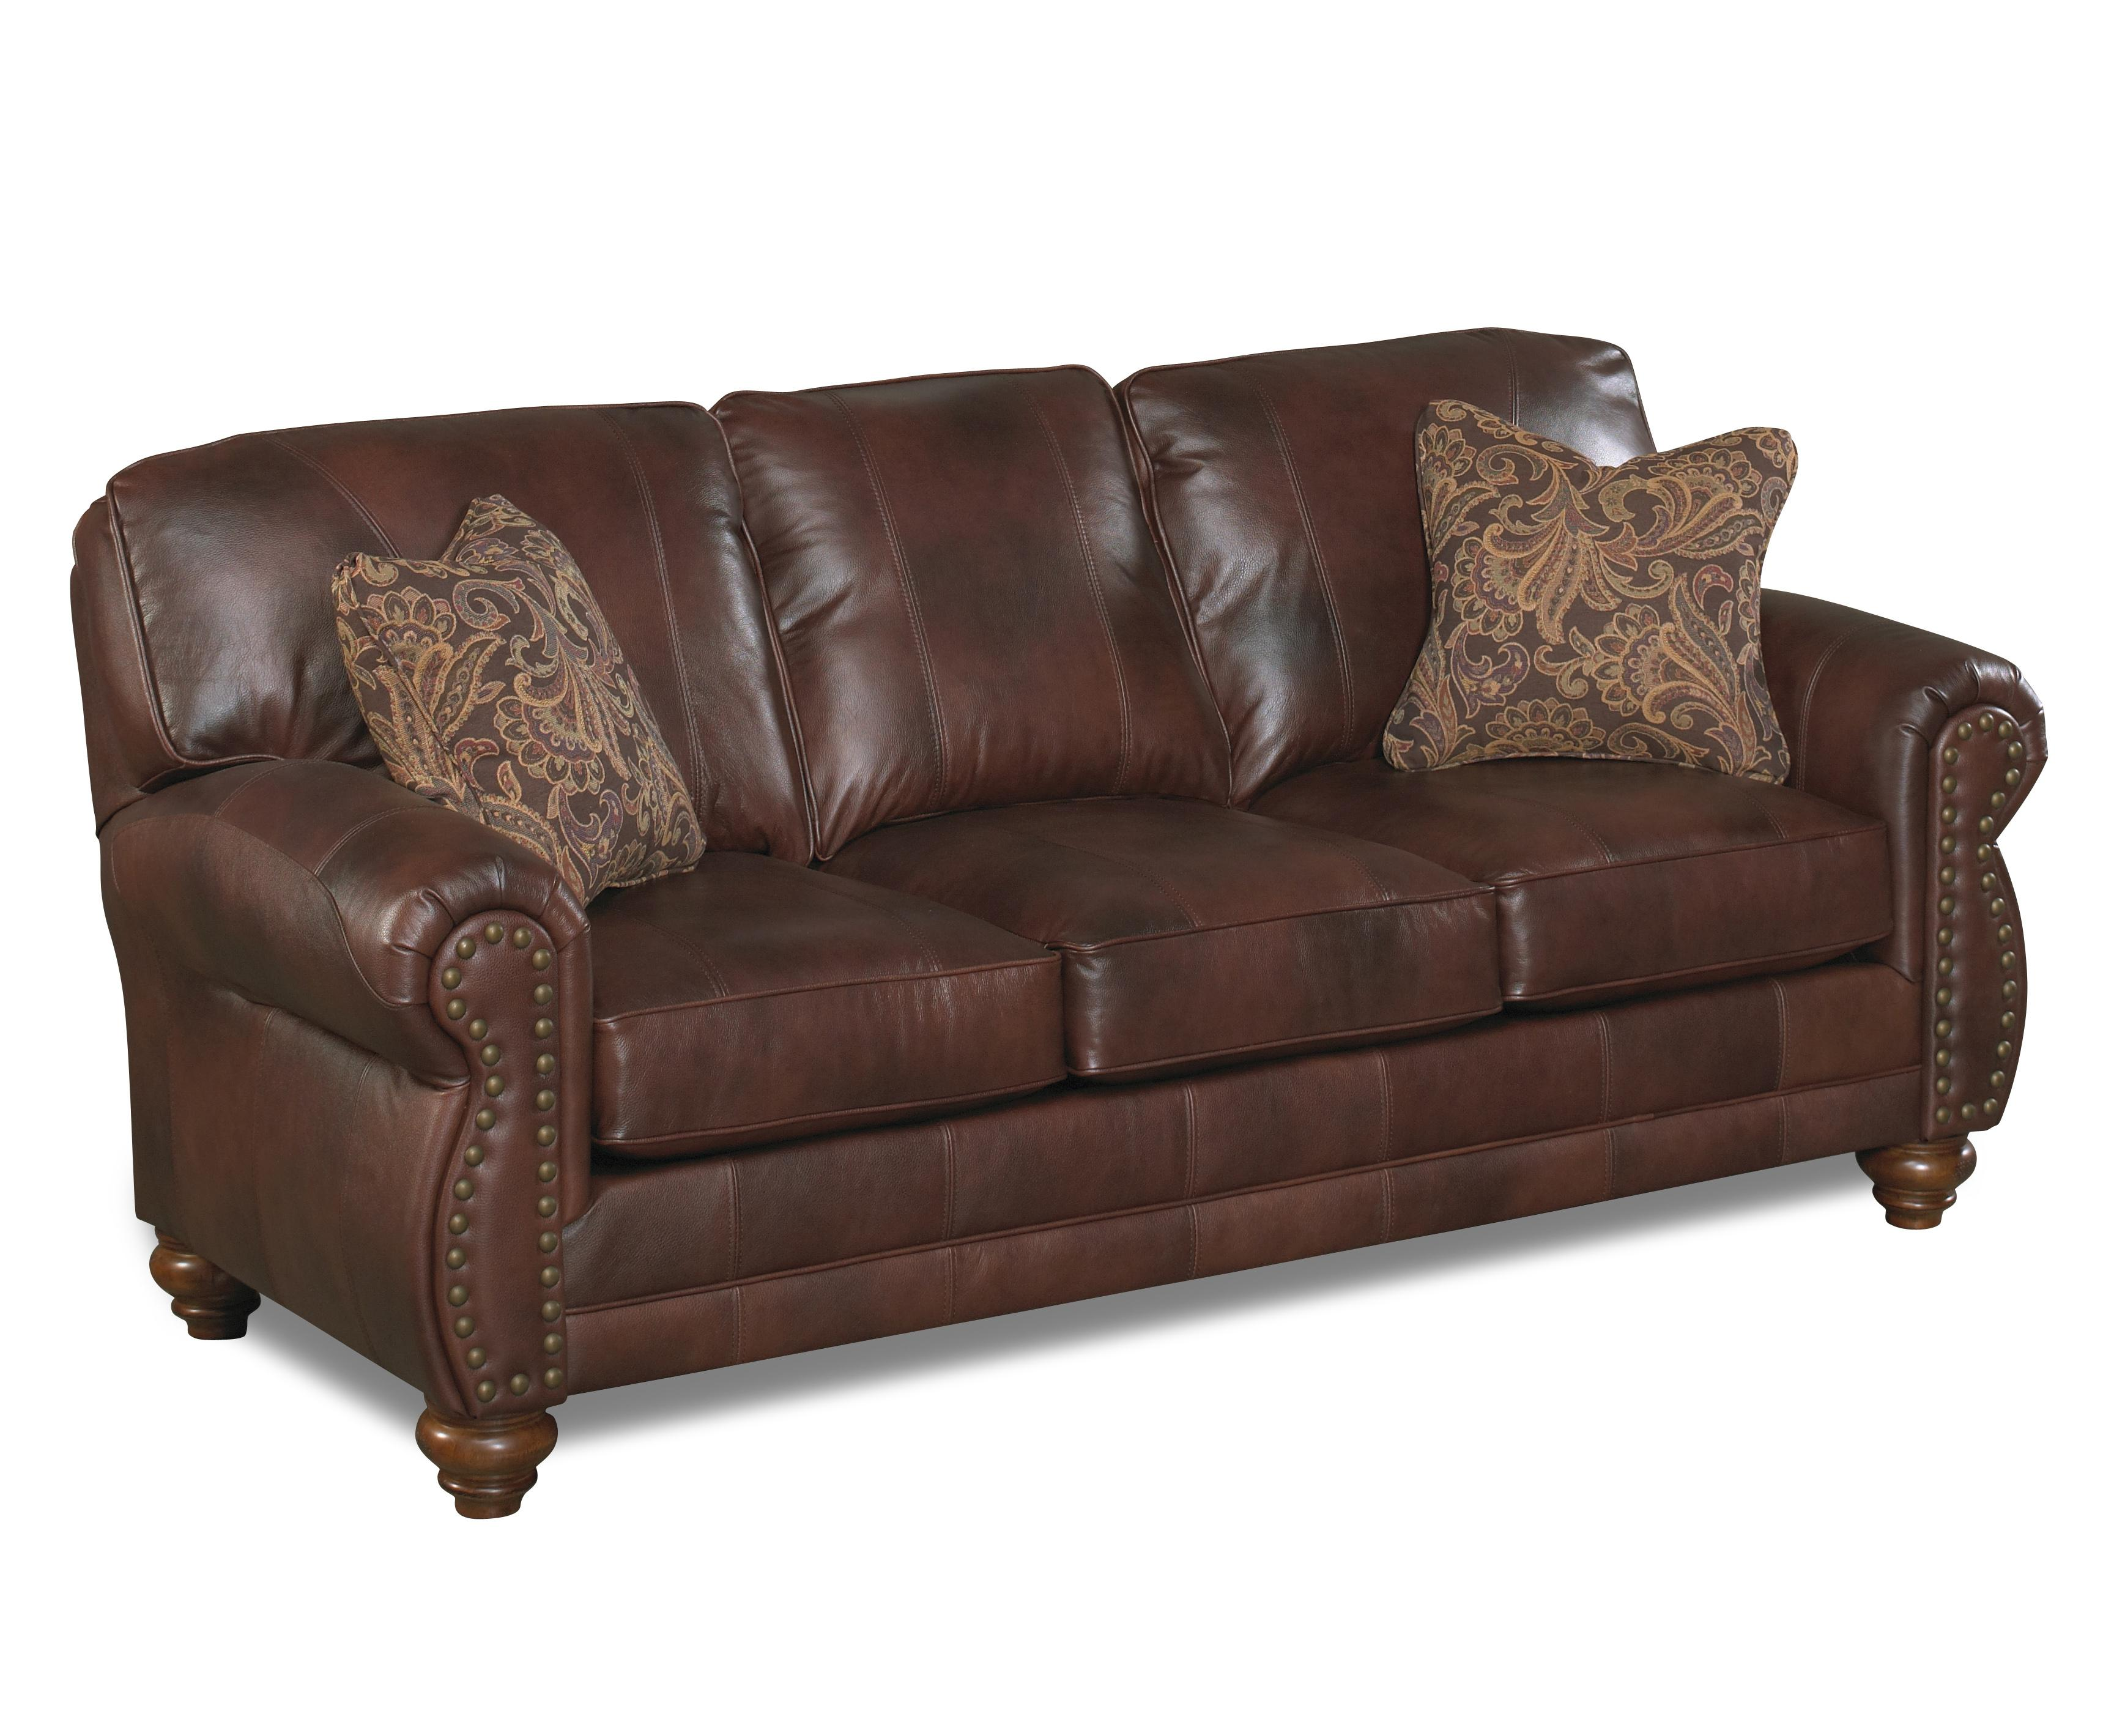 sofa nailhead new slipcover pottery barn best home furnishings noble s64lu stationary leather